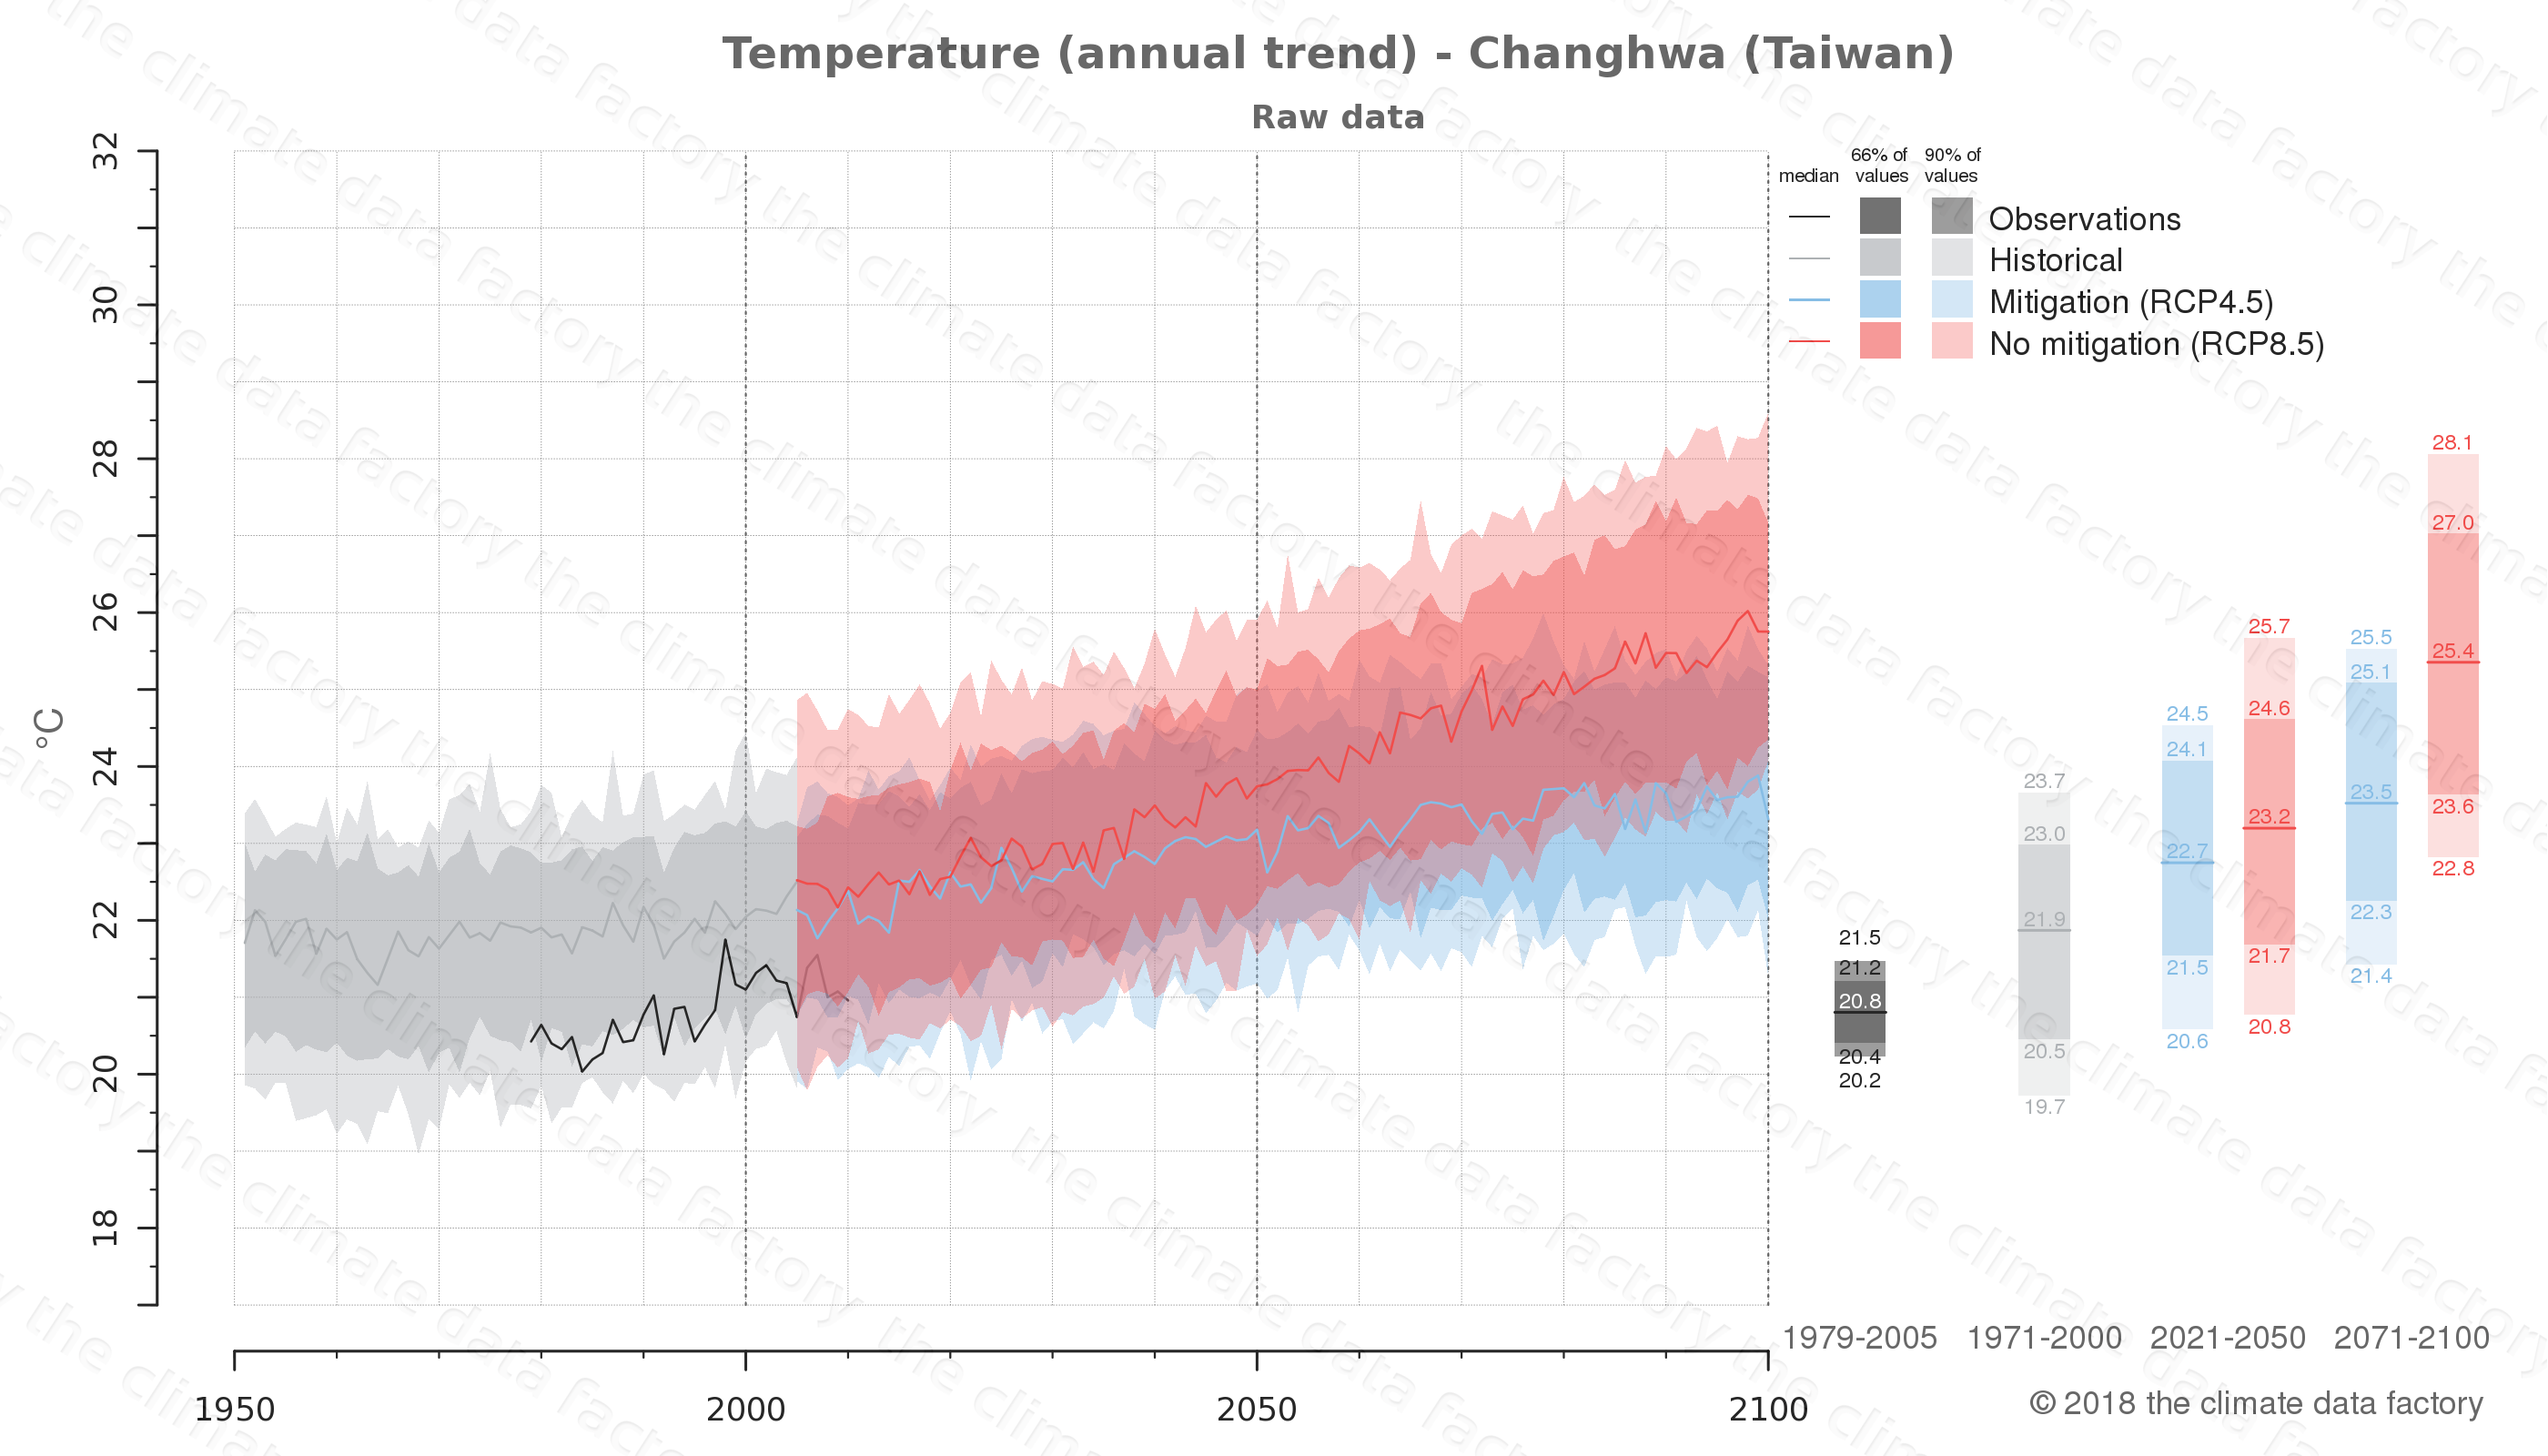 climate change data policy adaptation climate graph city data temperature changhwa taiwan